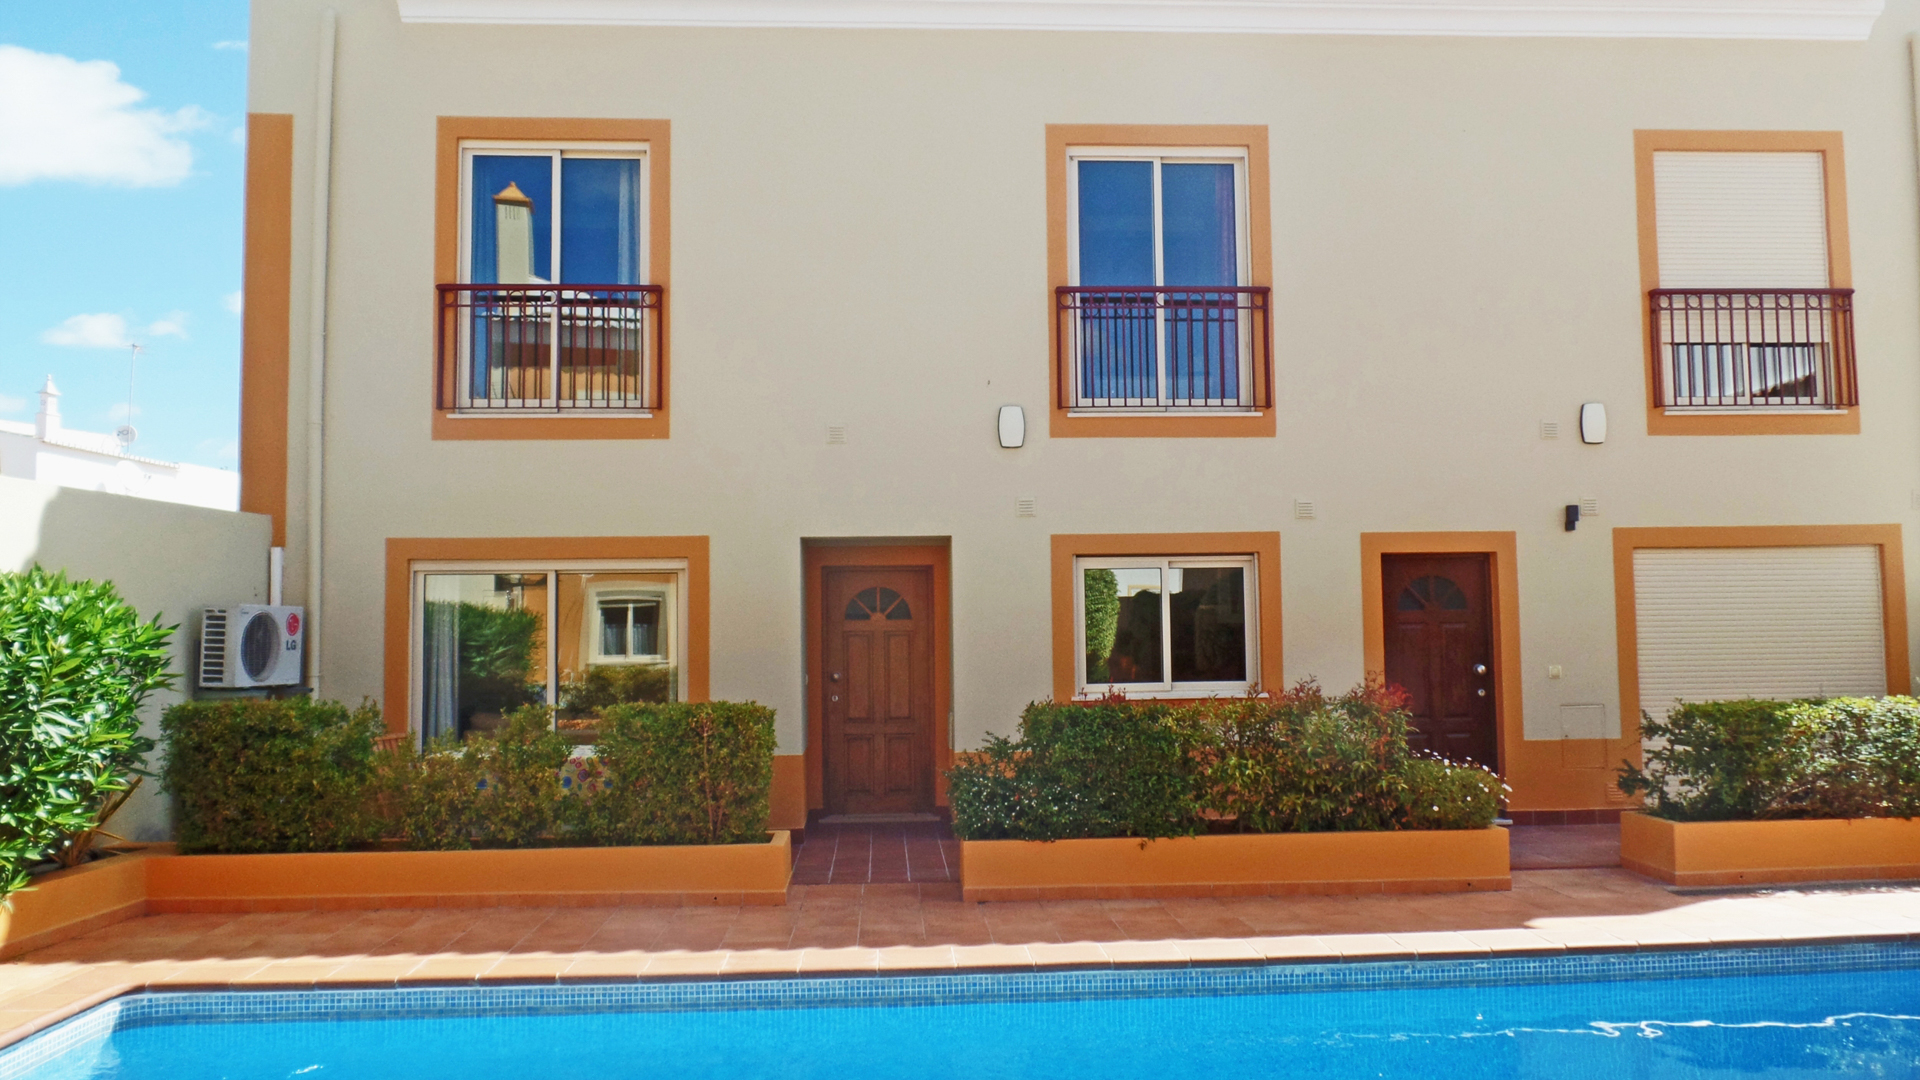 2 bedroom townhouse in small complex with communal pool in Budens, West Algarve | LG845